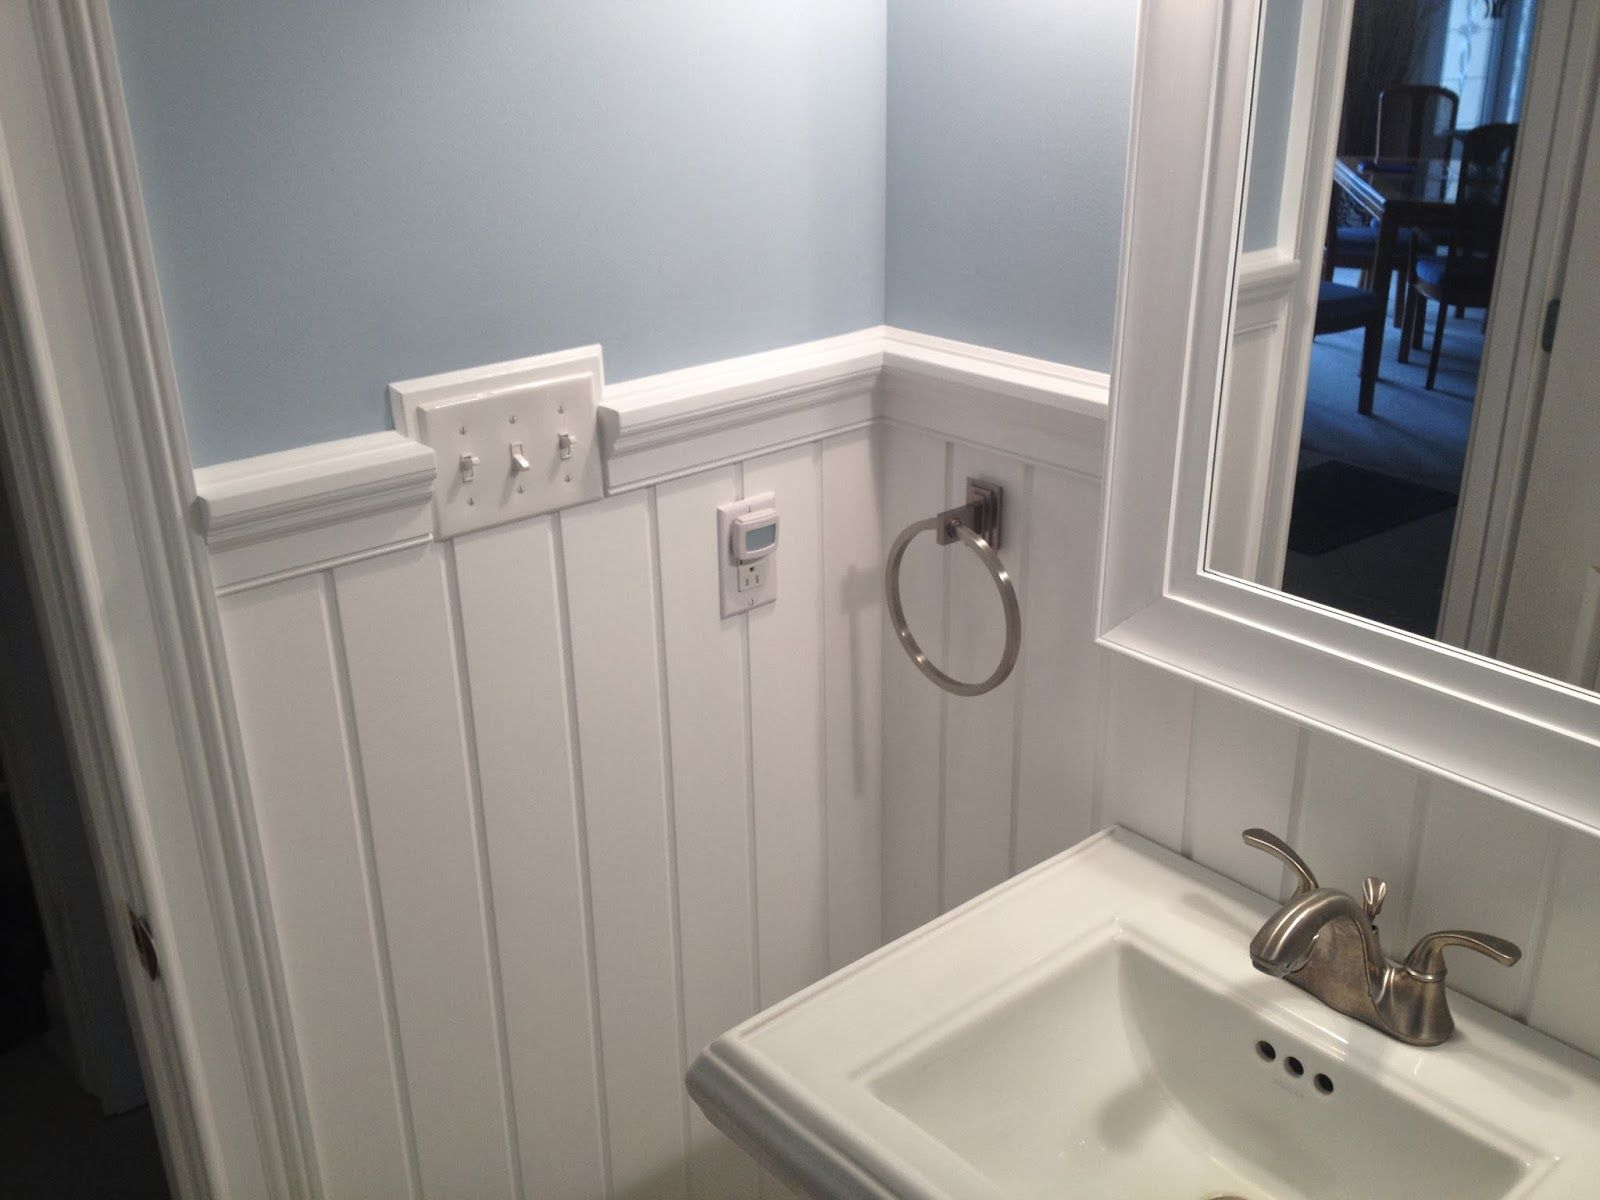 Chair Rail In Bathroom Part - 46: 30+ Best Chair Rail Ideas, Pictures, Decor And Remodel